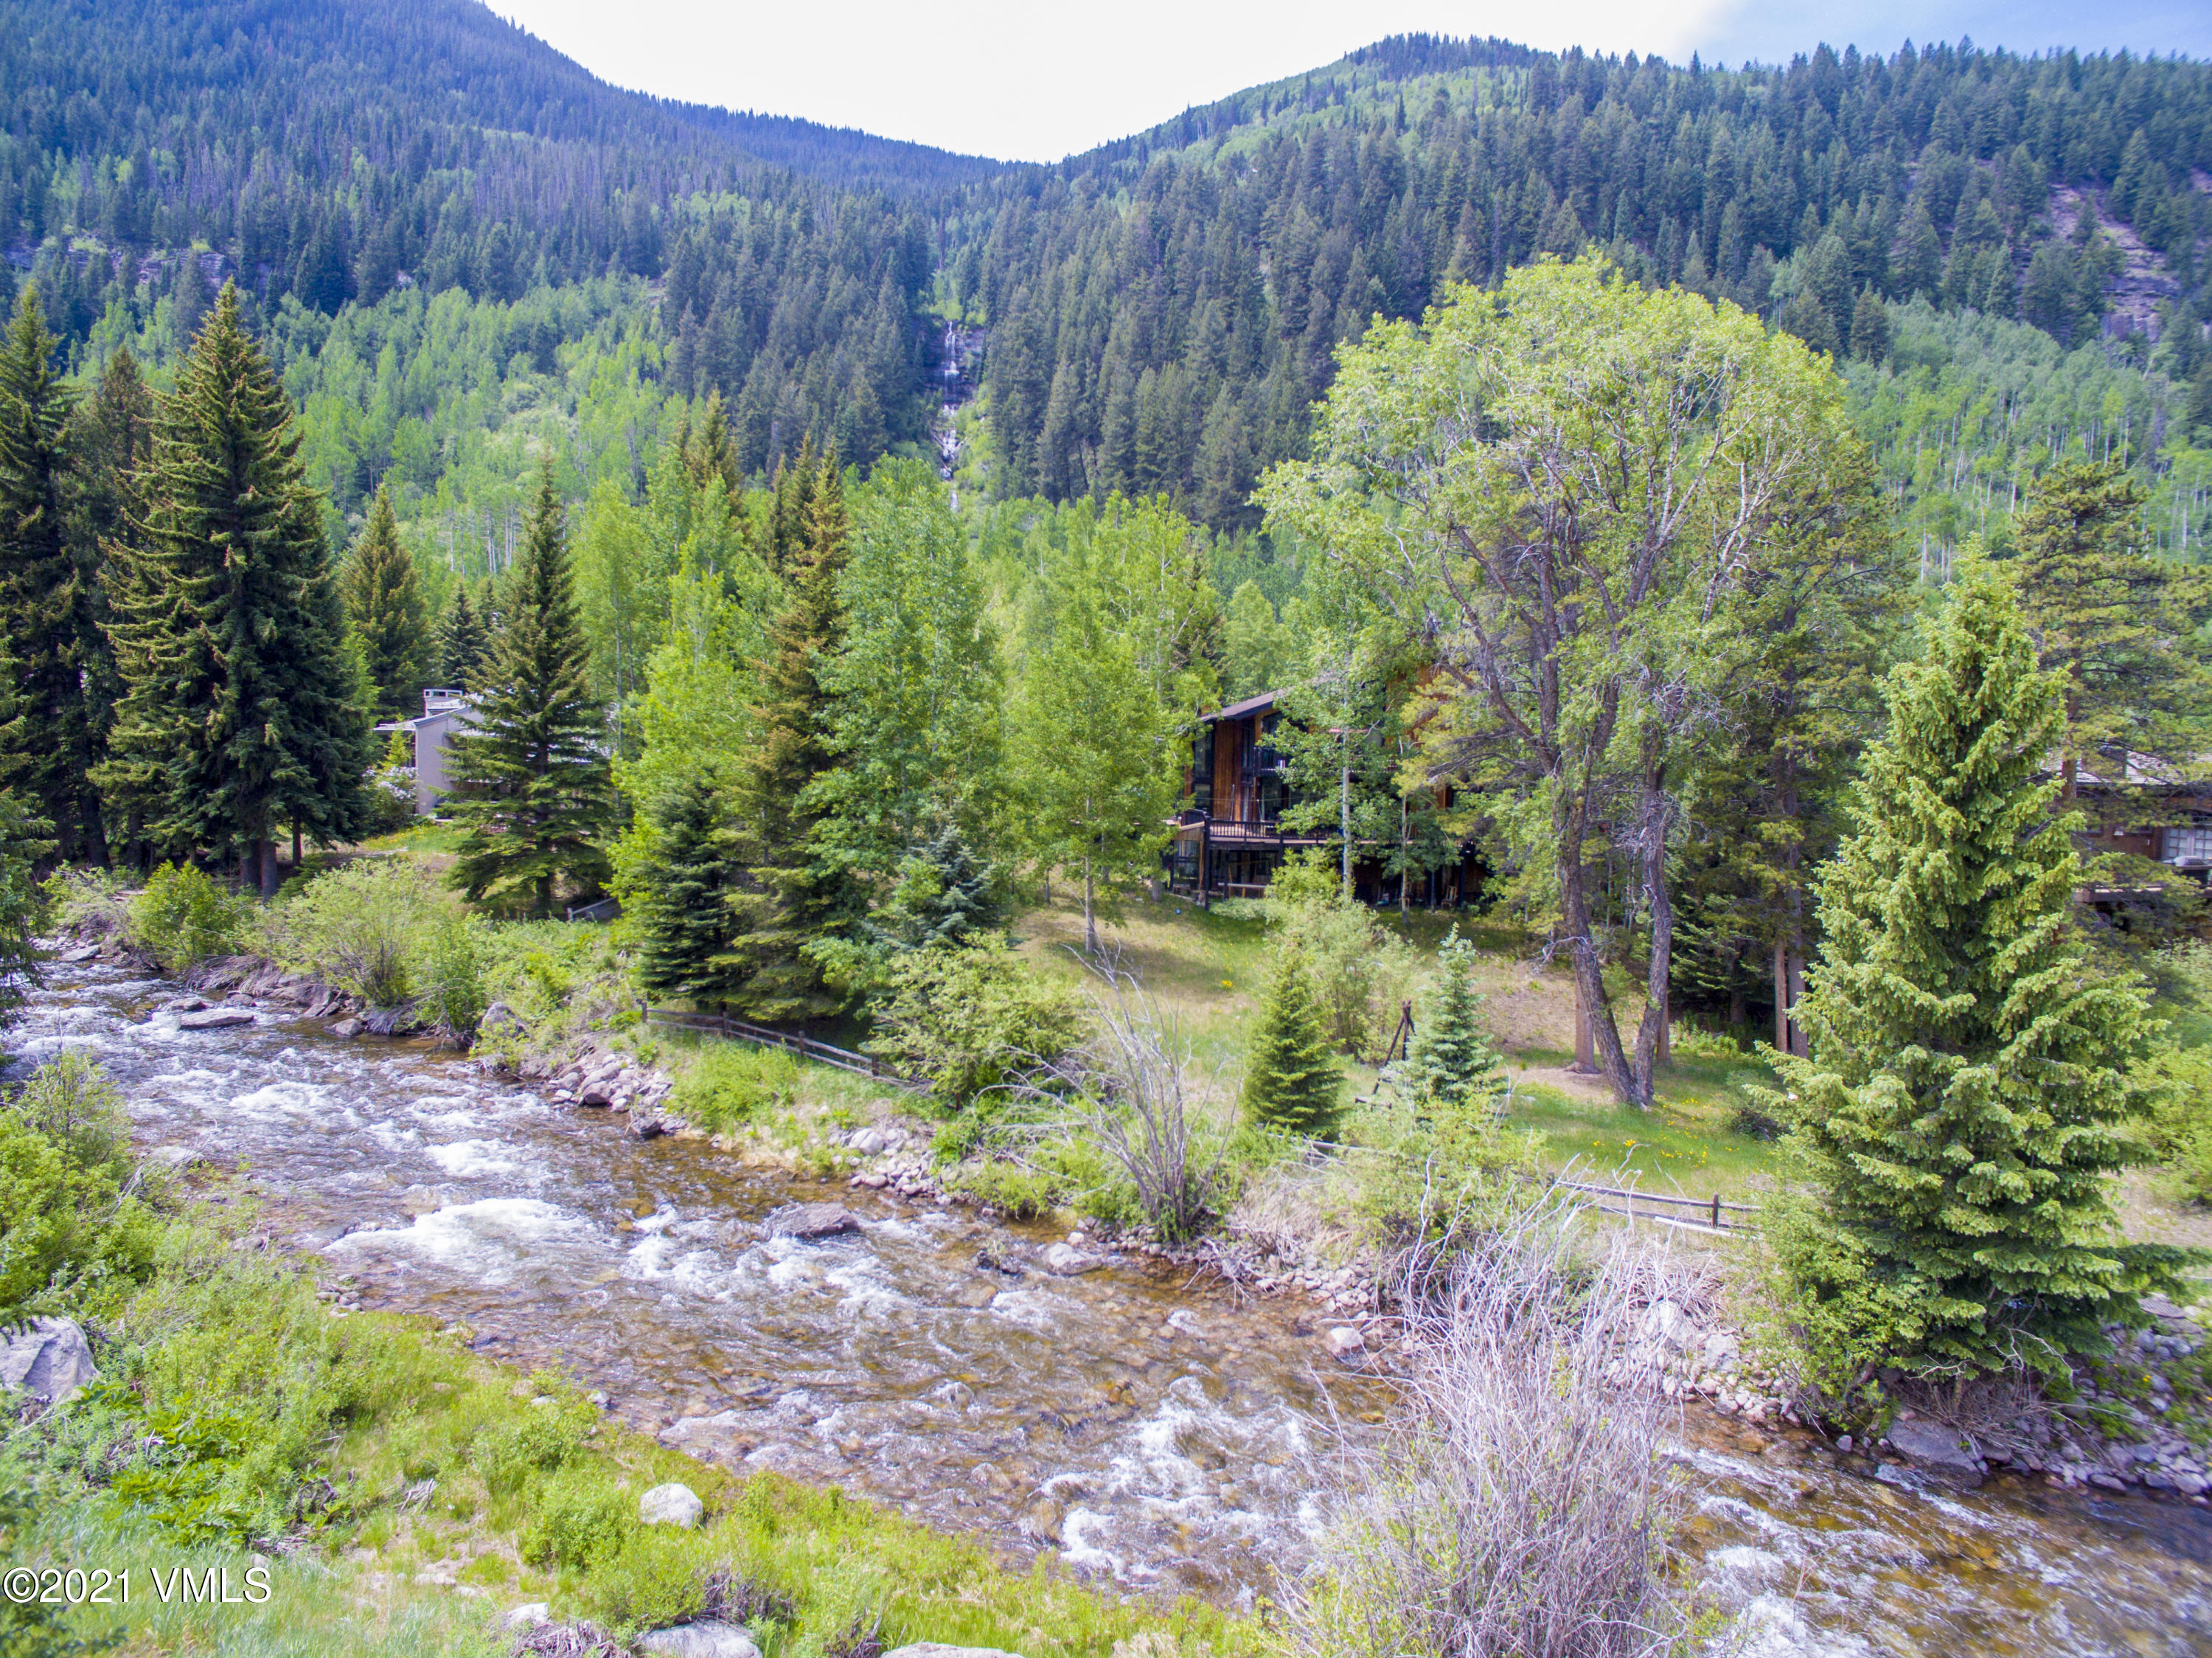 Prime .879+/- acre redevelopment opportunity with 217+\- feet of Gore Creek frontage as well southern views to an idyllic waterfall. This East Vail parcel is conveniently located close to the Town of Vail bus, with views up the Pitkin Creek drainage to the Gore Range, and offers a gently downward sloping lot in an idyllic alpine setting. Both sides of the duplex (R011260 & R011255) are included in this offering, zoned two-family residential, with substantial GRFA to accommodate a single family home or duplex.   Property is being sold 'as is'.